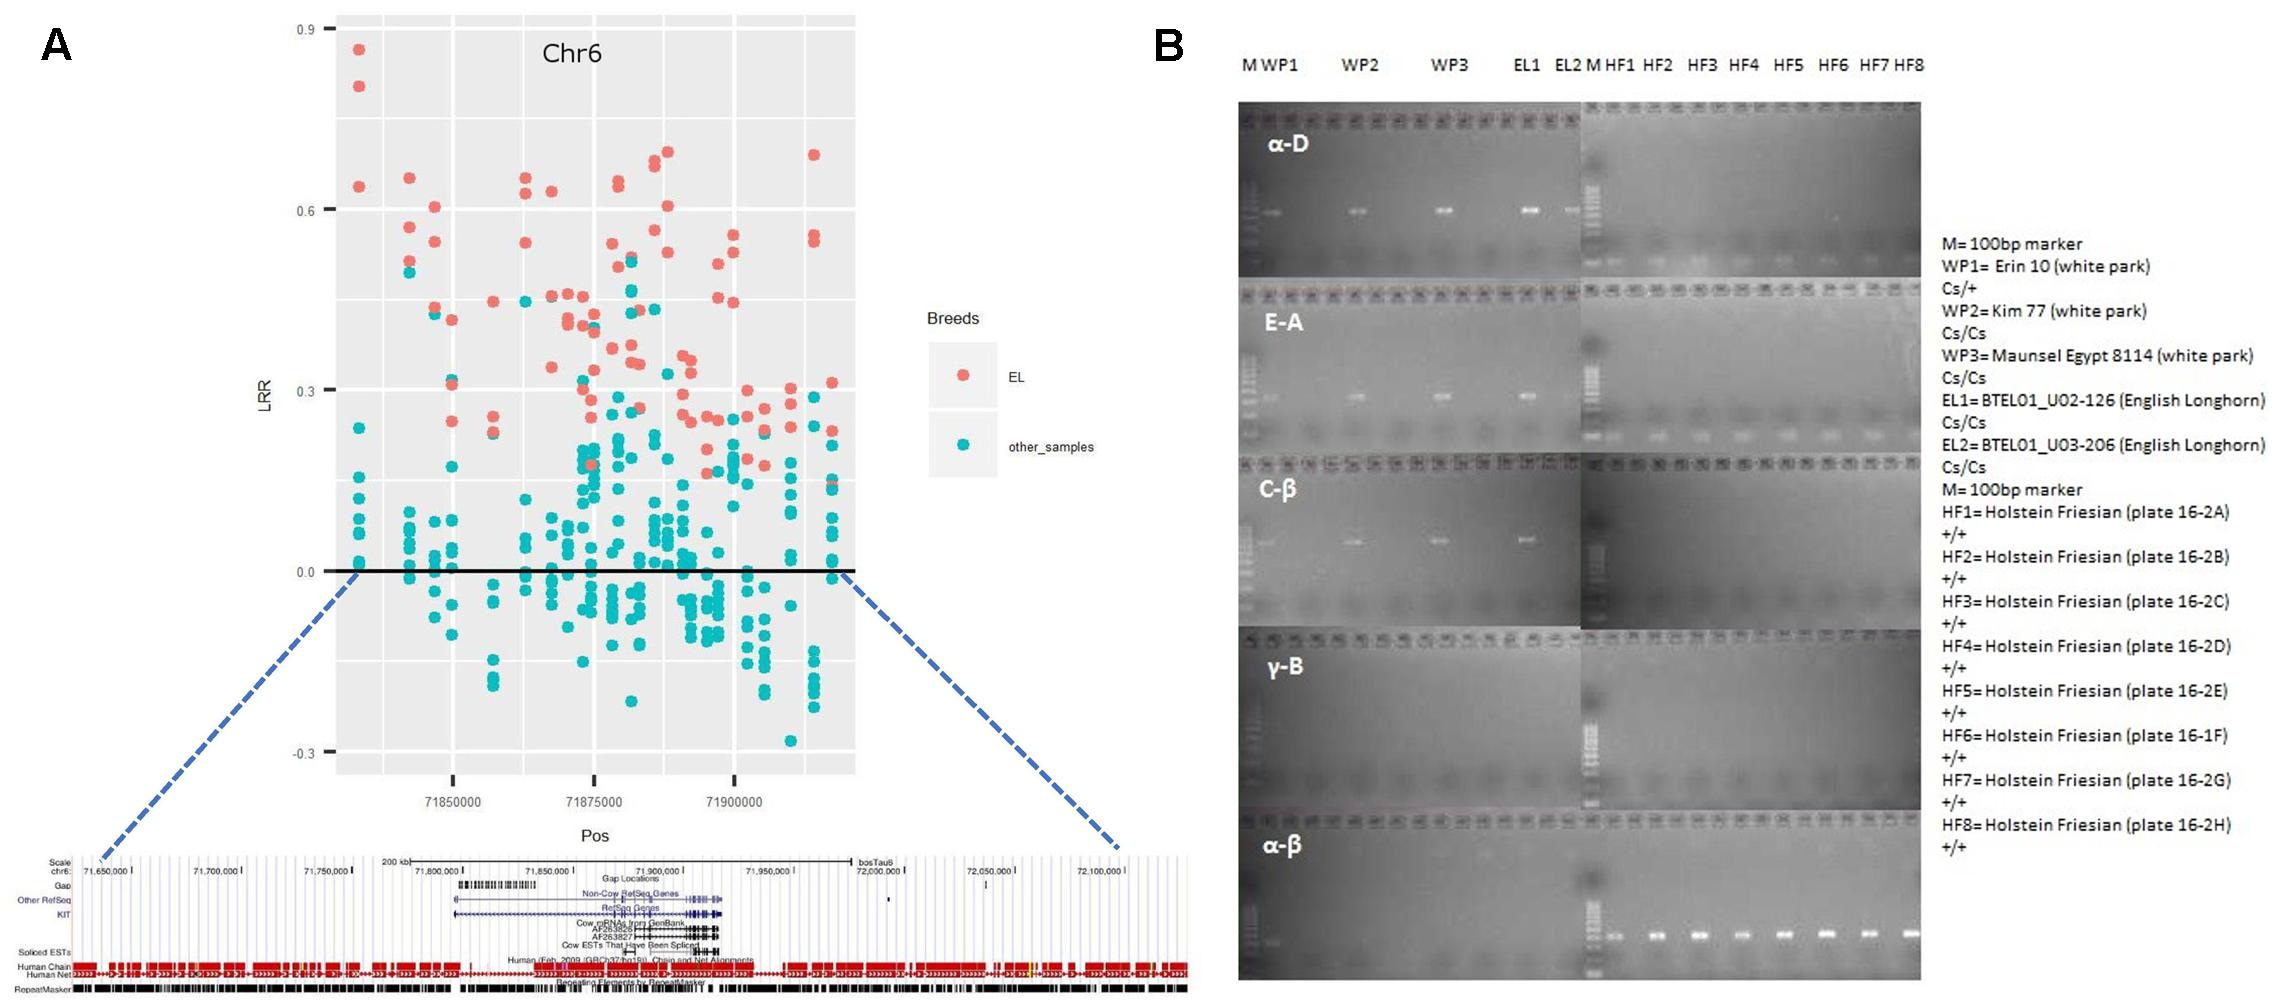 Frontiers | Distribution and Functionality of Copy Number Variation